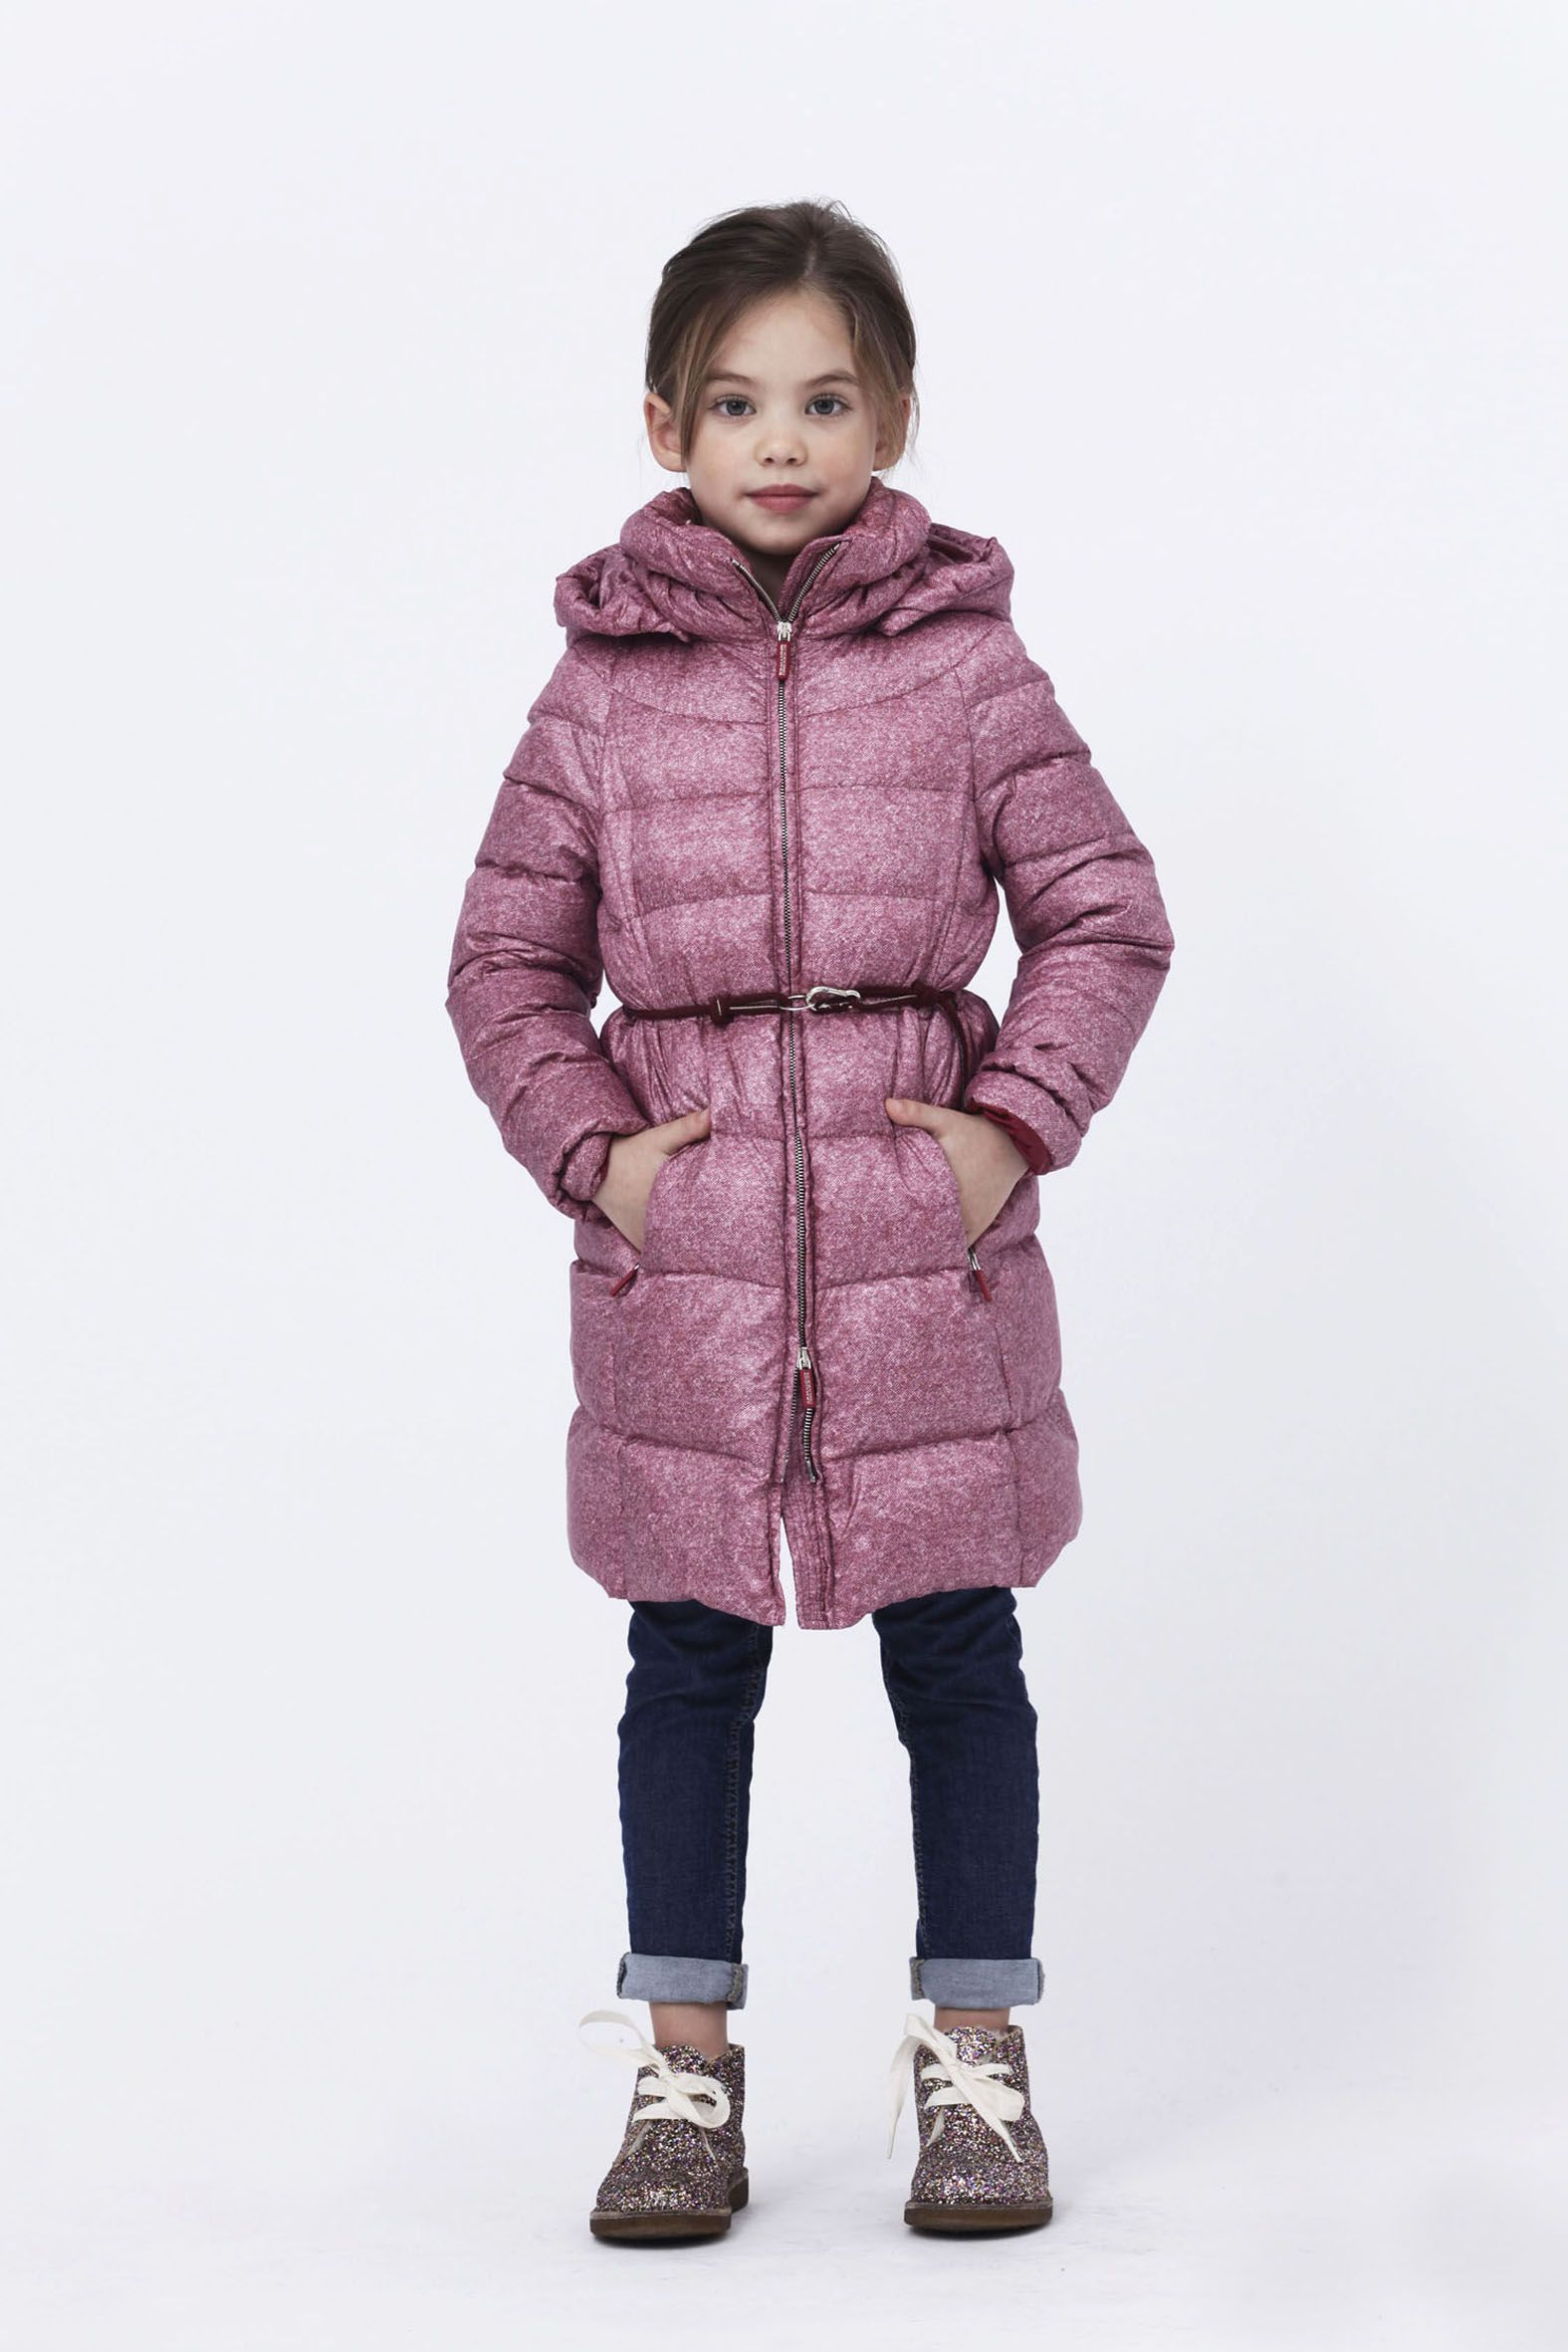 Ermanno Scervino Junior F/W 2014-15 collection #ErmannoScervinoJunior